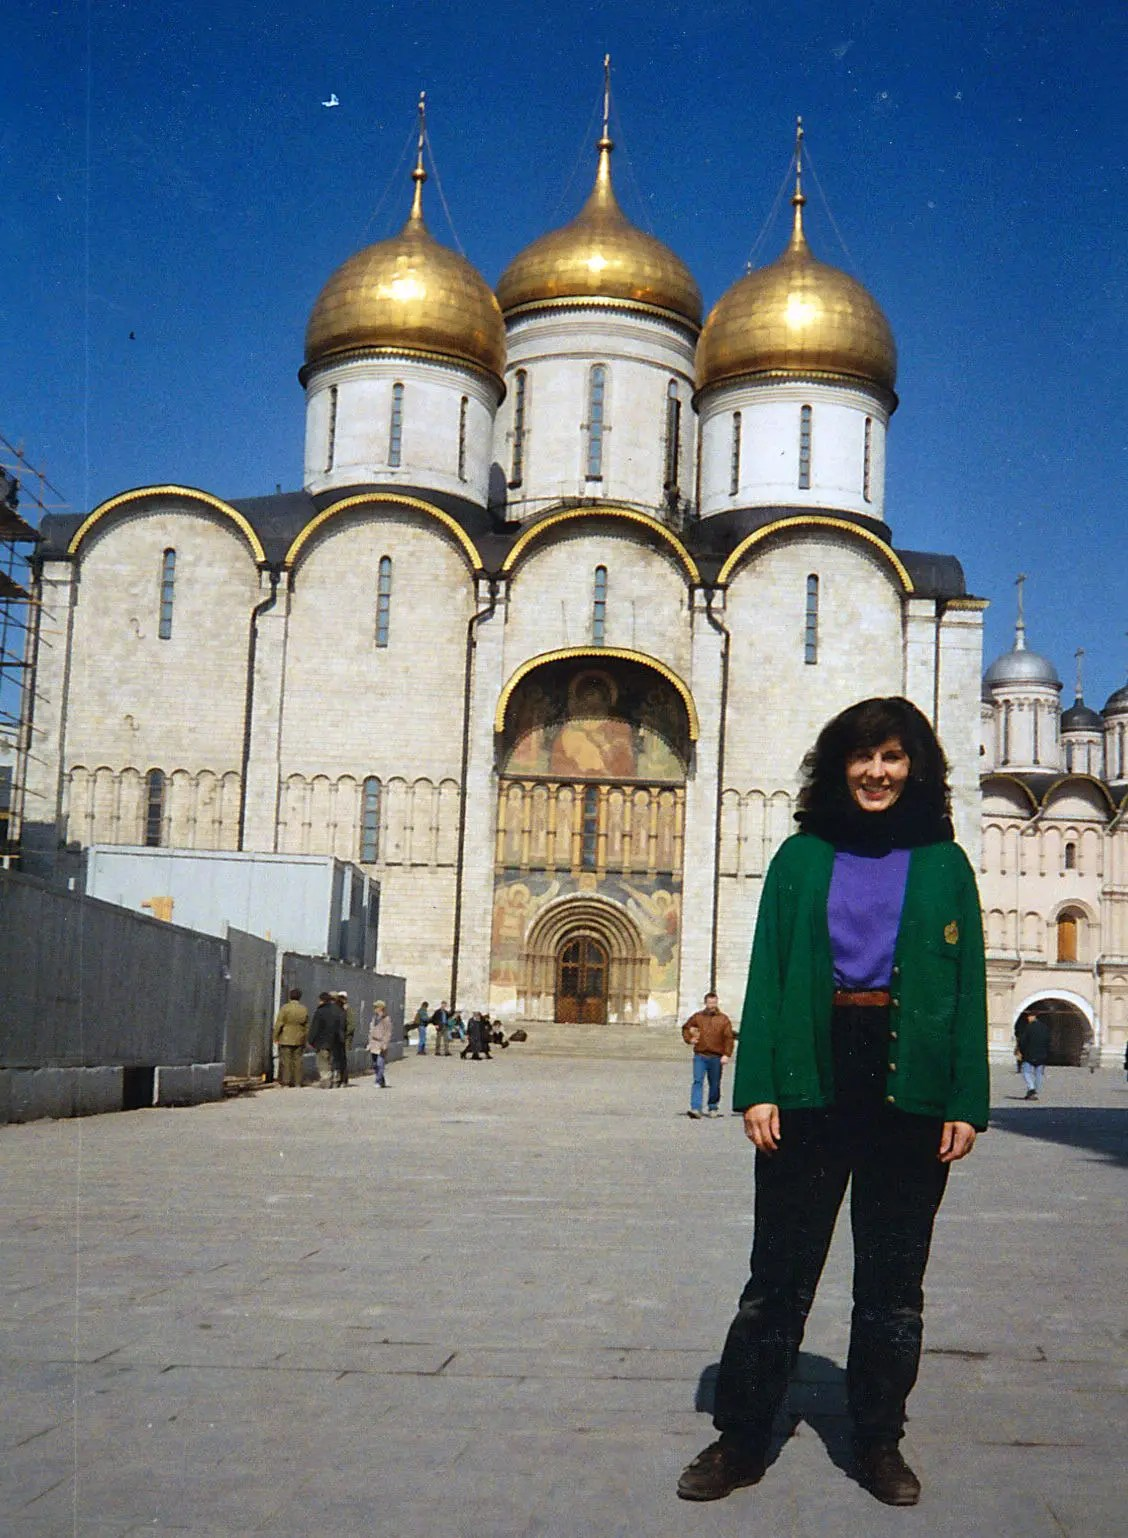 One of my favorite places, the Kremlin in Moscow, Russia. This is from 1990 Photo credit: Helen Holter